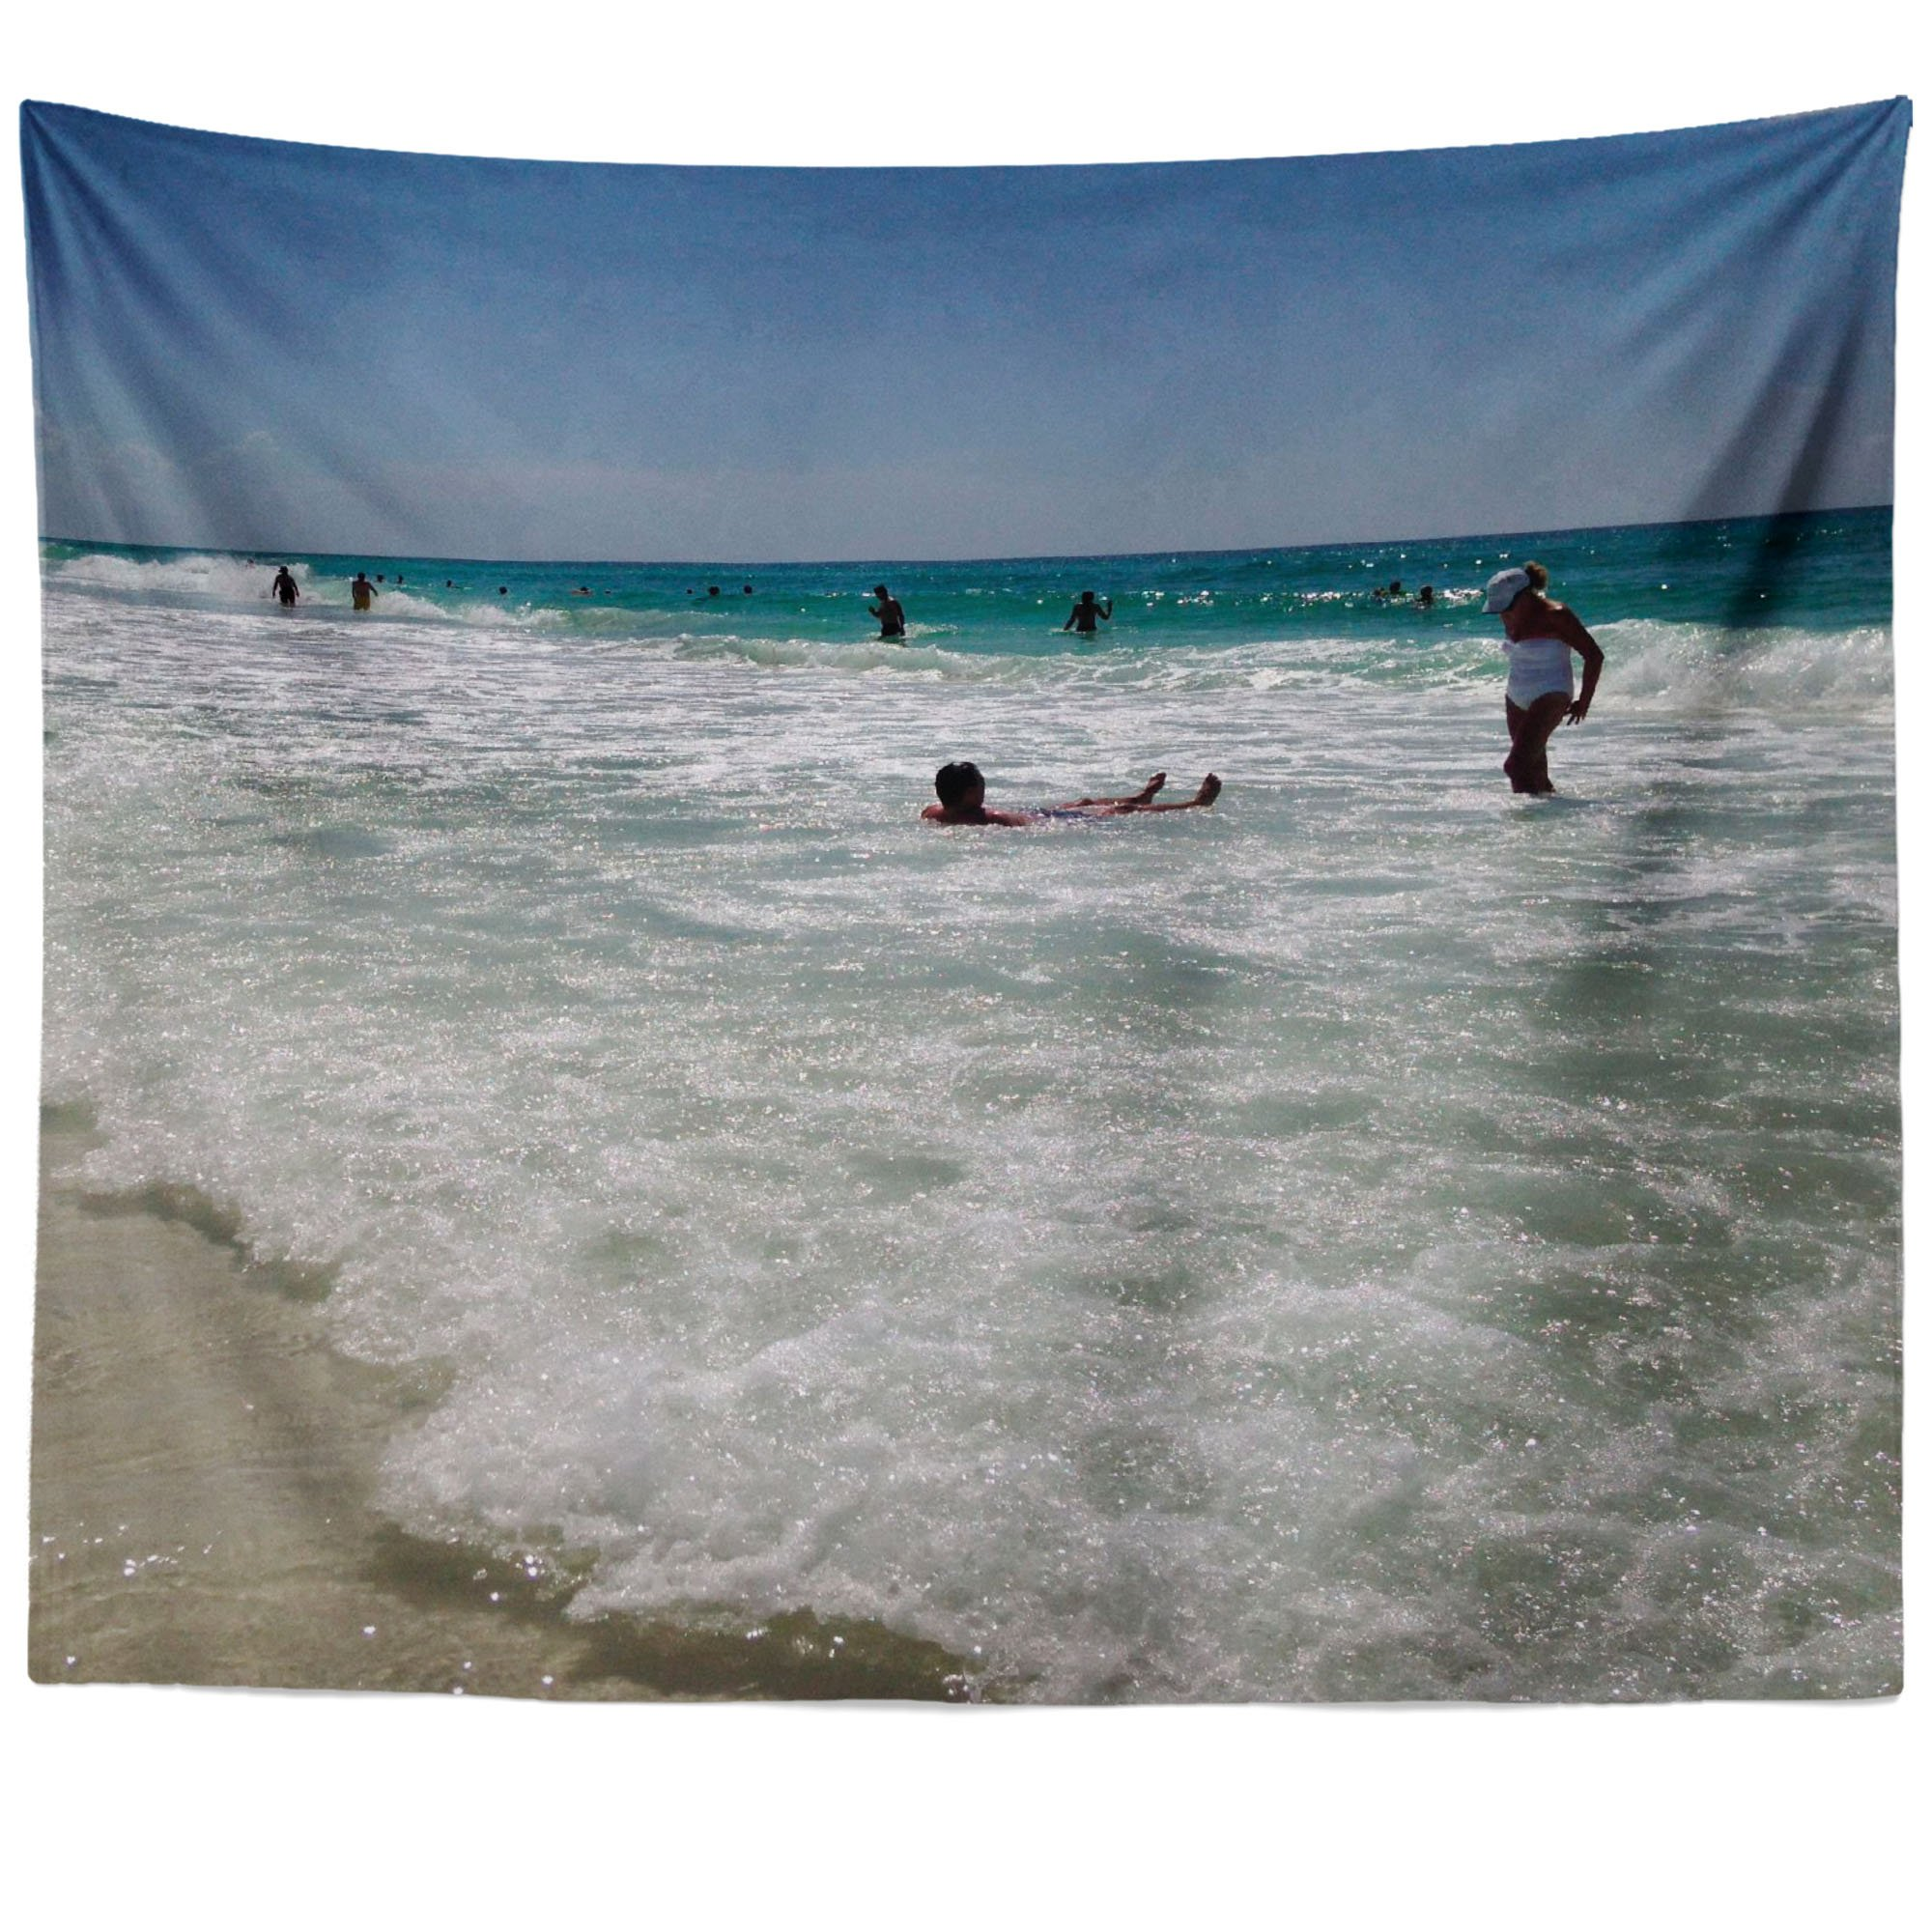 Westlake Art - Beach Everyday - Wall Hanging Tapestry - Picture Photography Artwork Home Decor Living Room - 68x80 Inch (D41D8)